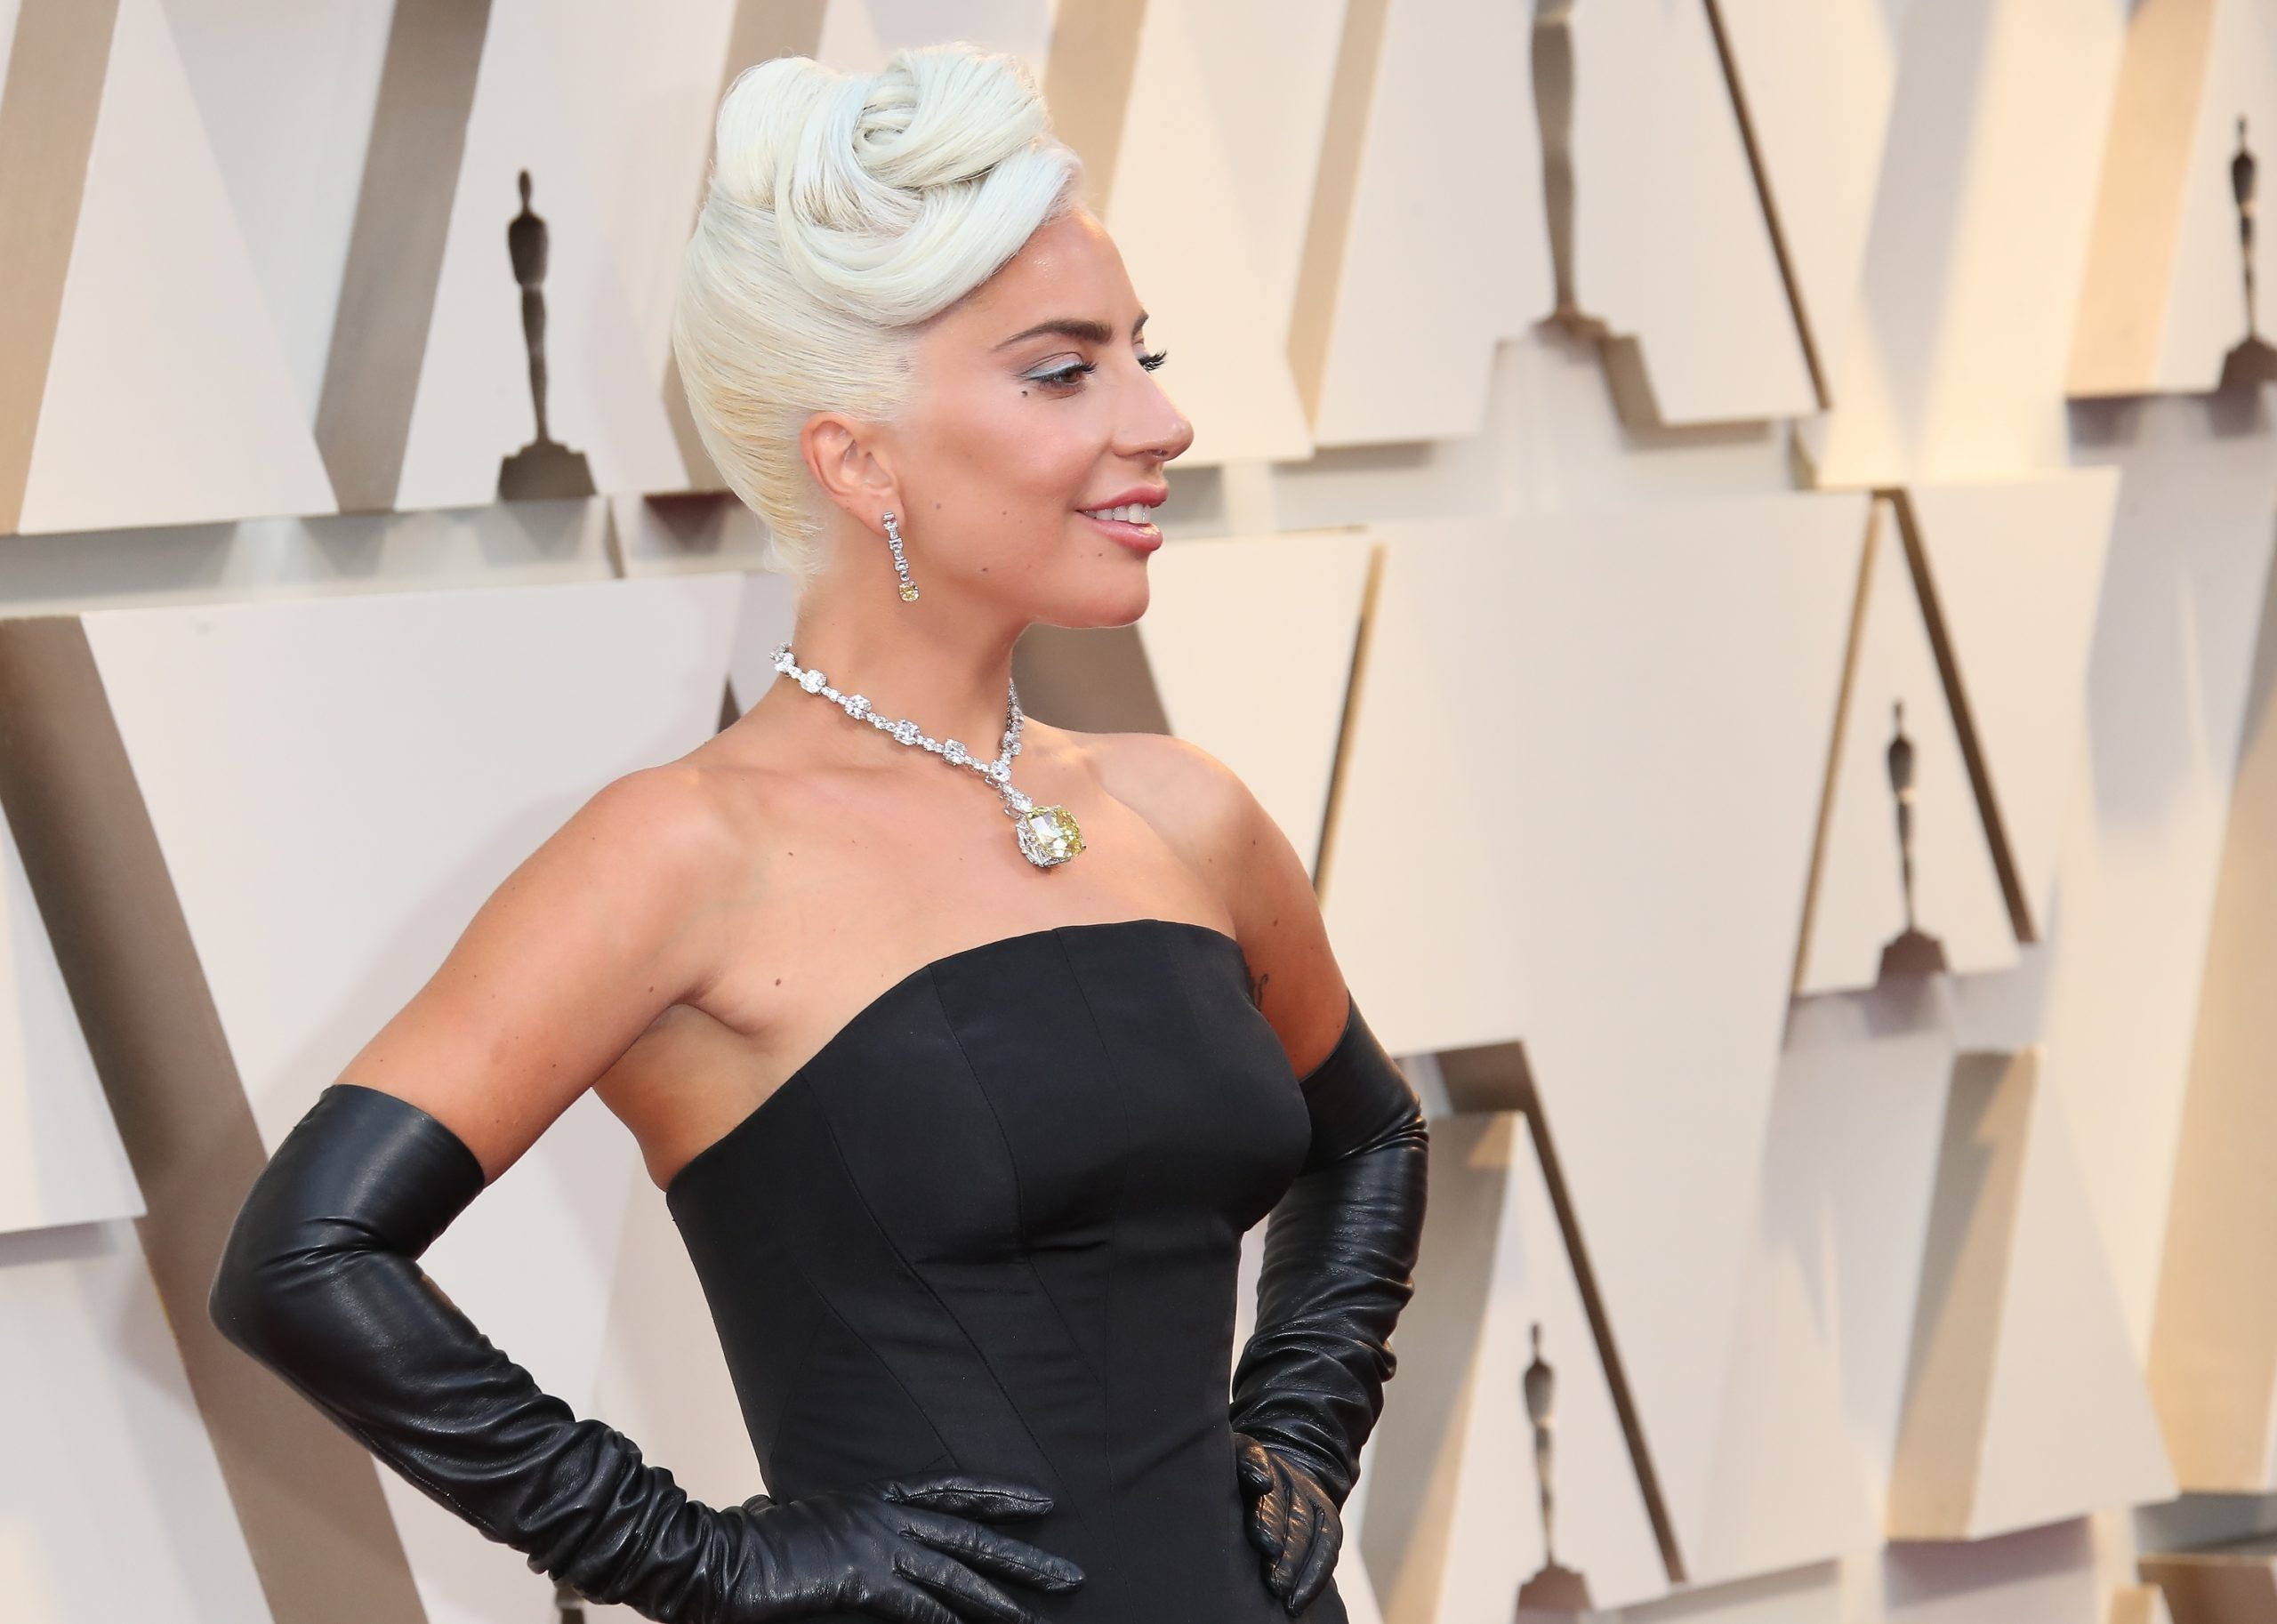 Lady Gaga says she had her $30 million diamond necklace confiscated on a Taco Bell trip after 'barrelling through champagne' and partying with Madonna